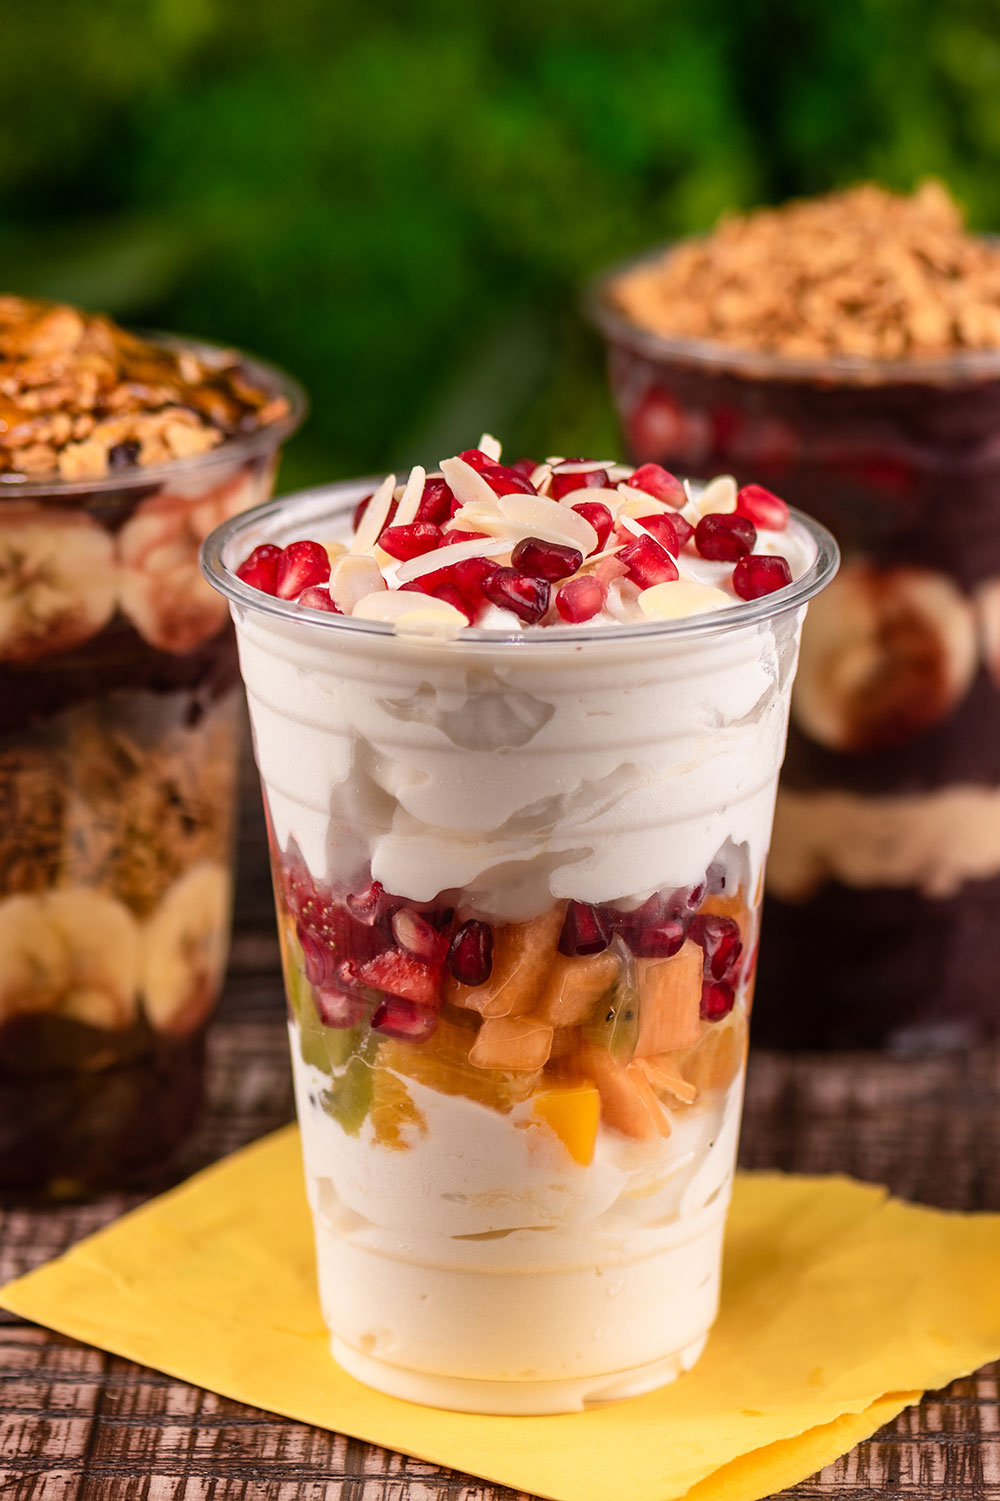 Food Photography Services in Sharjah, UAE